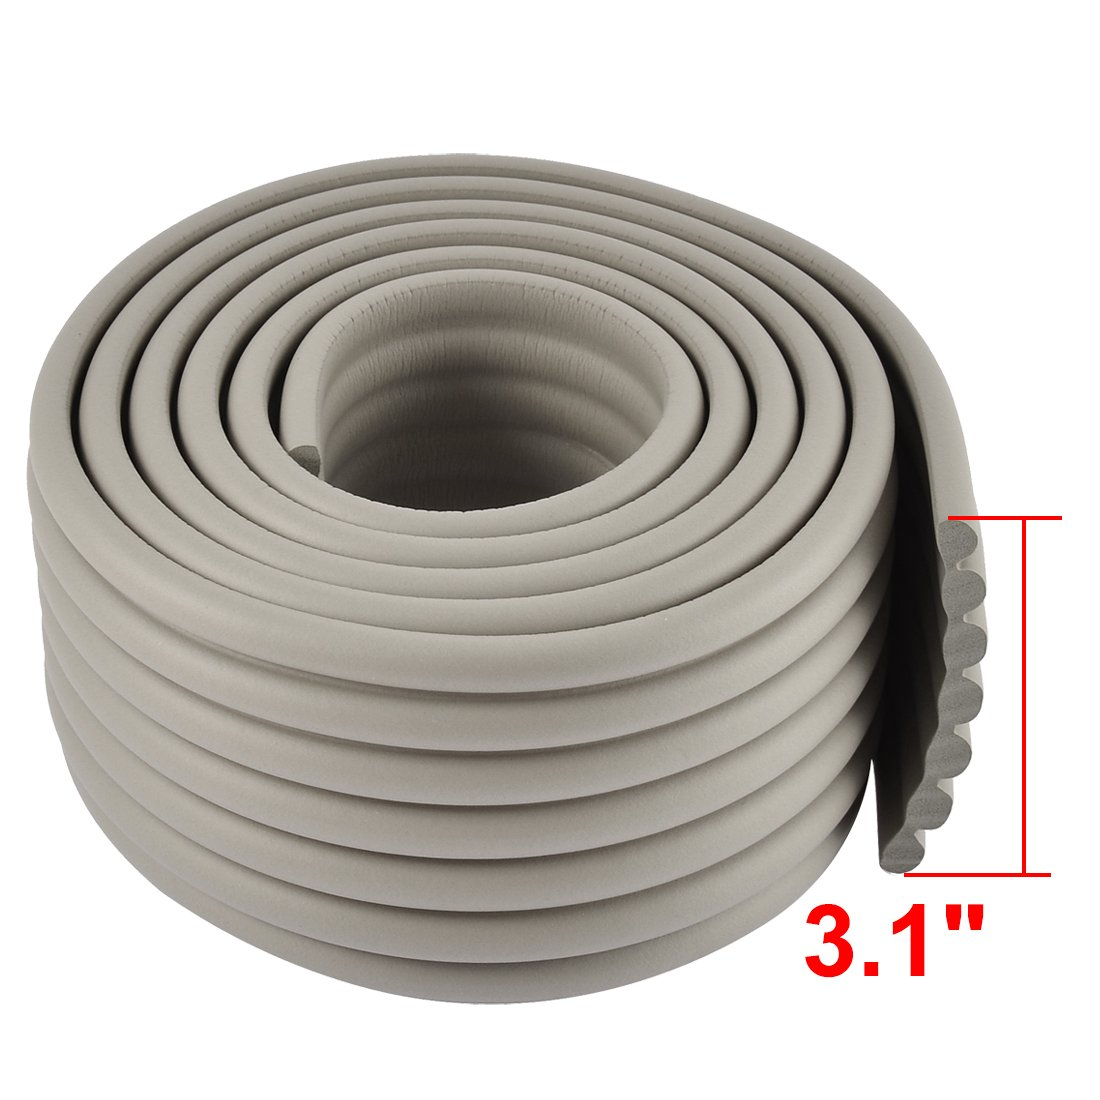 uxcell Table Desk Edge Corner Cushion Guard Protector Beige w Adhesive Tape